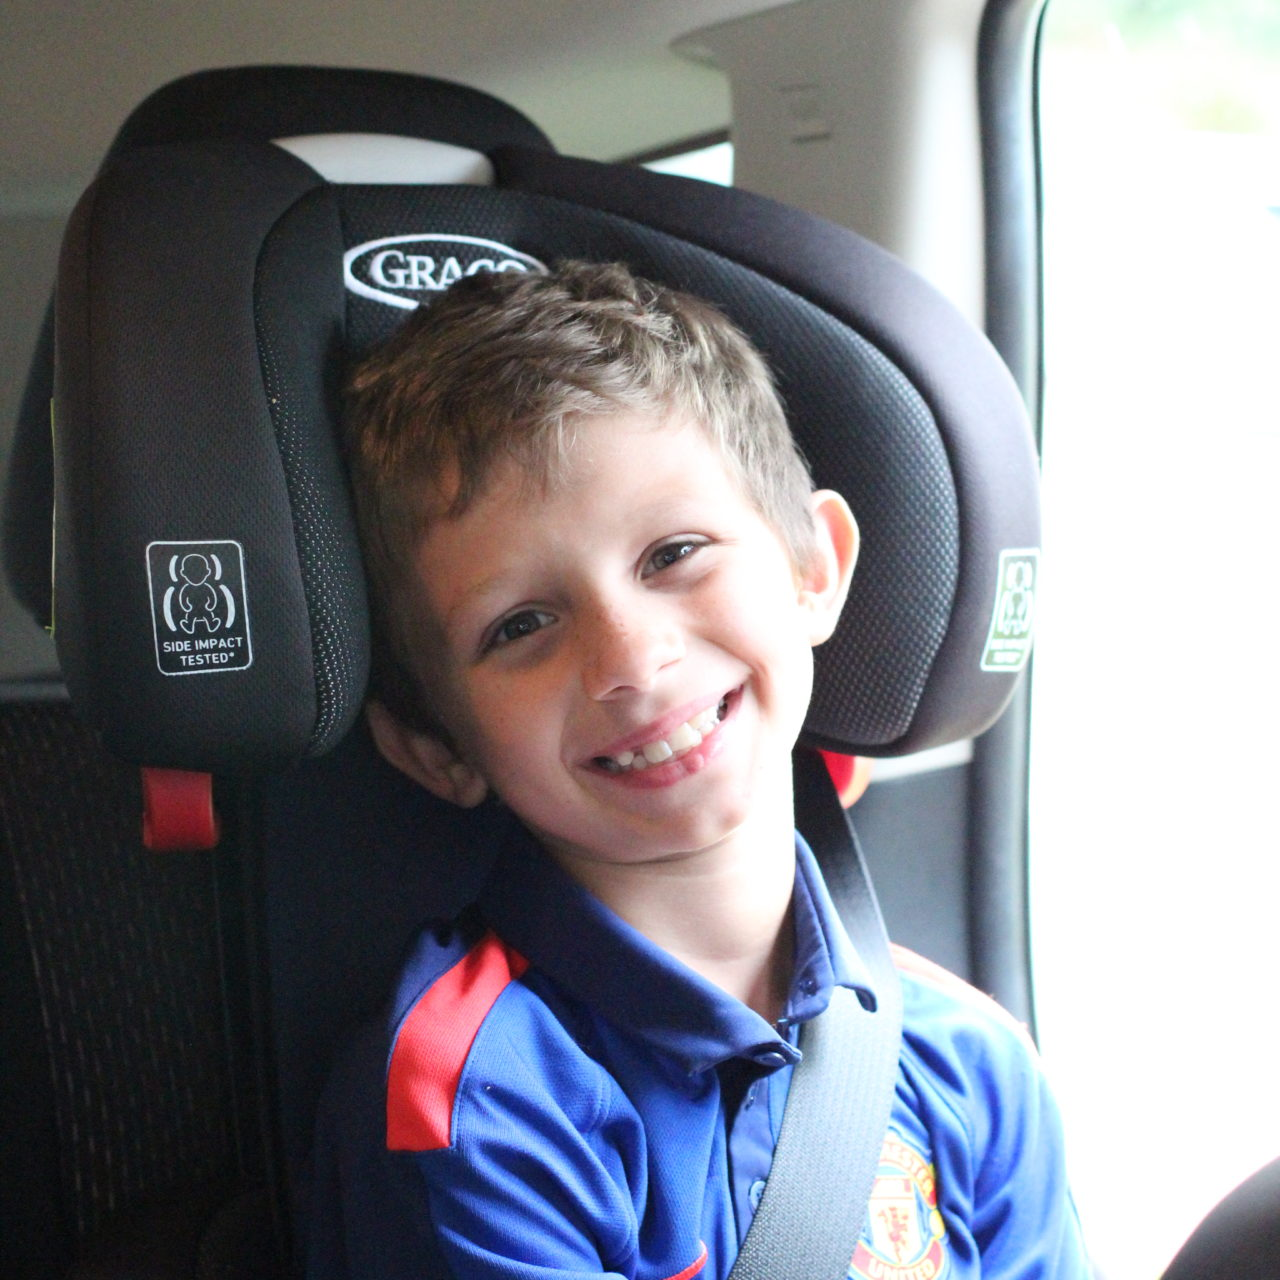 The best highback booster seat for your school-aged child